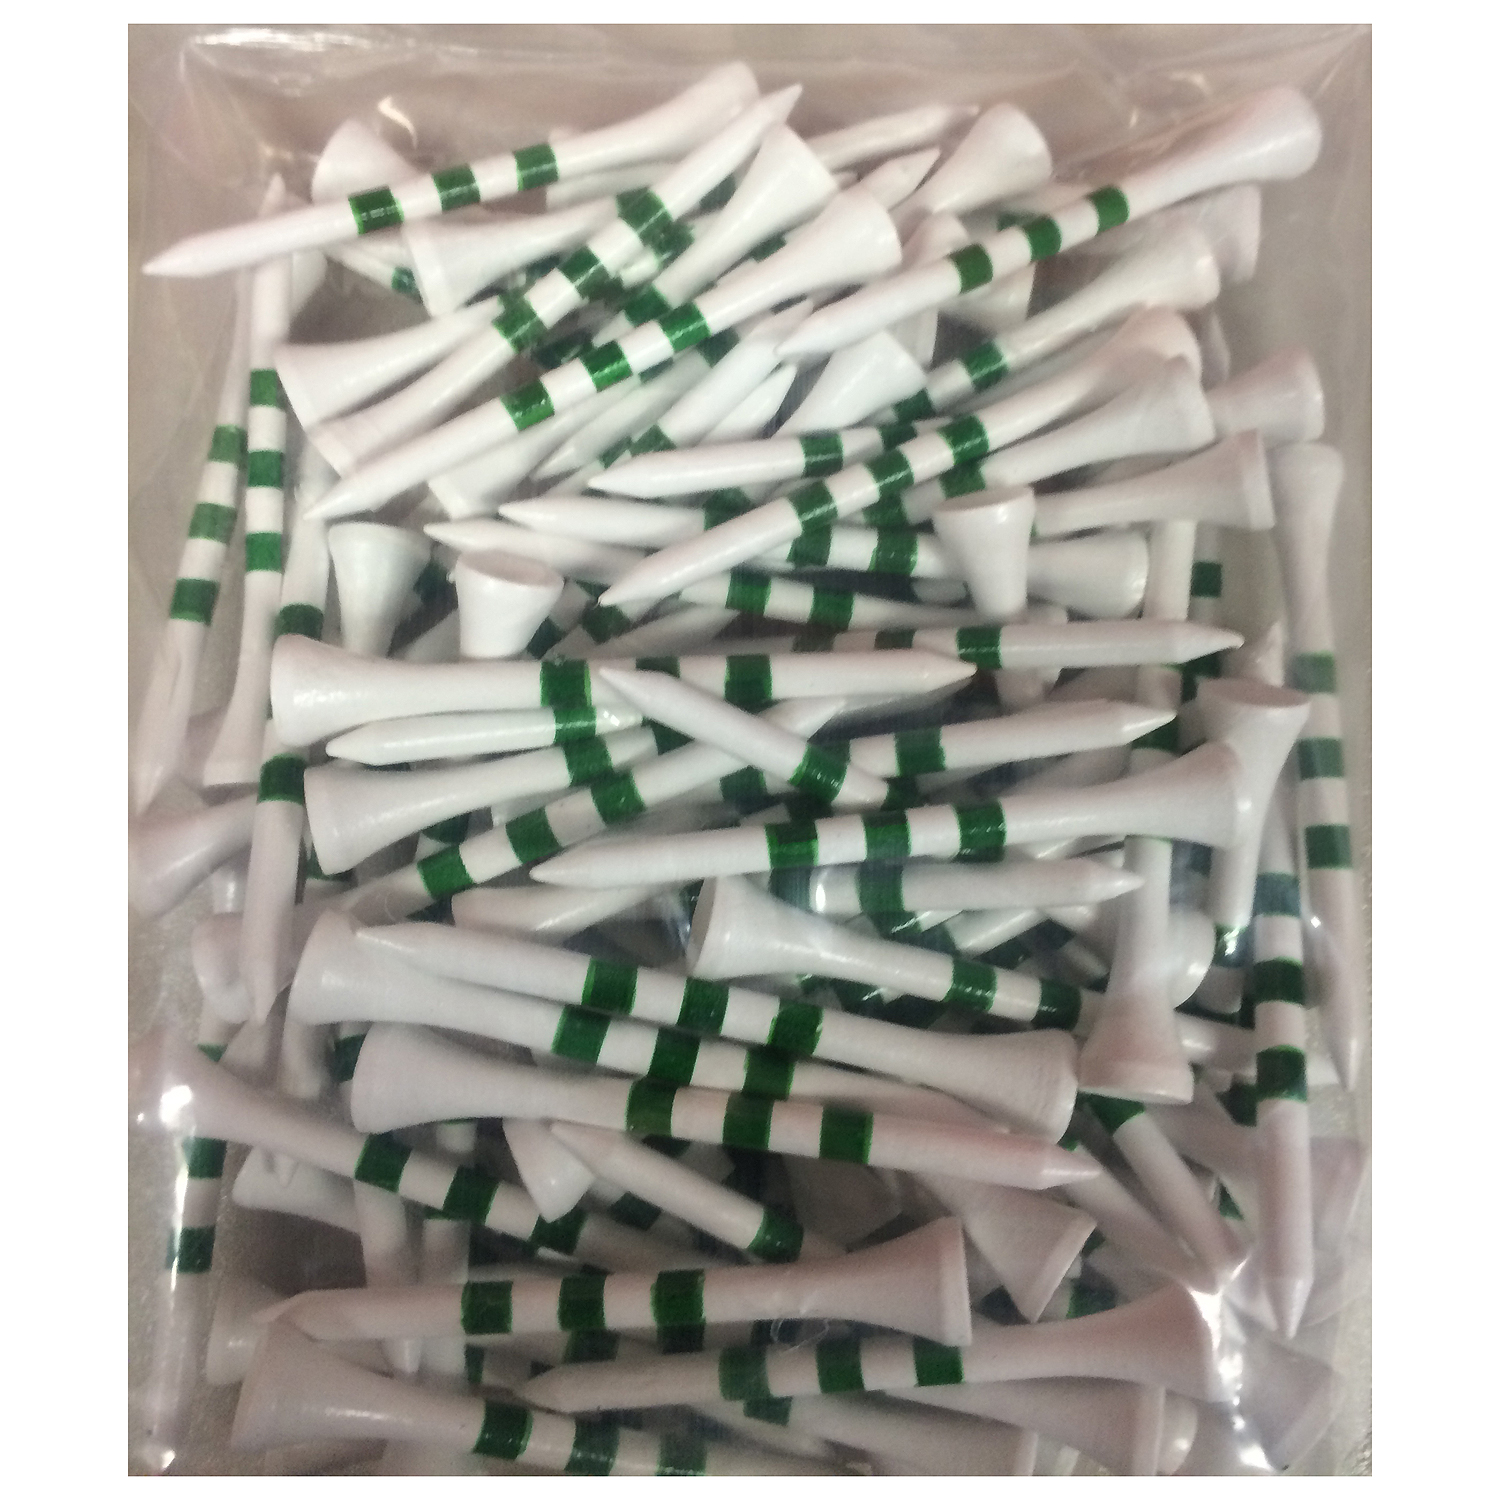 "2 3/4"" Wooden Golf Tees with Height Indication Stripes - Pack of 100"